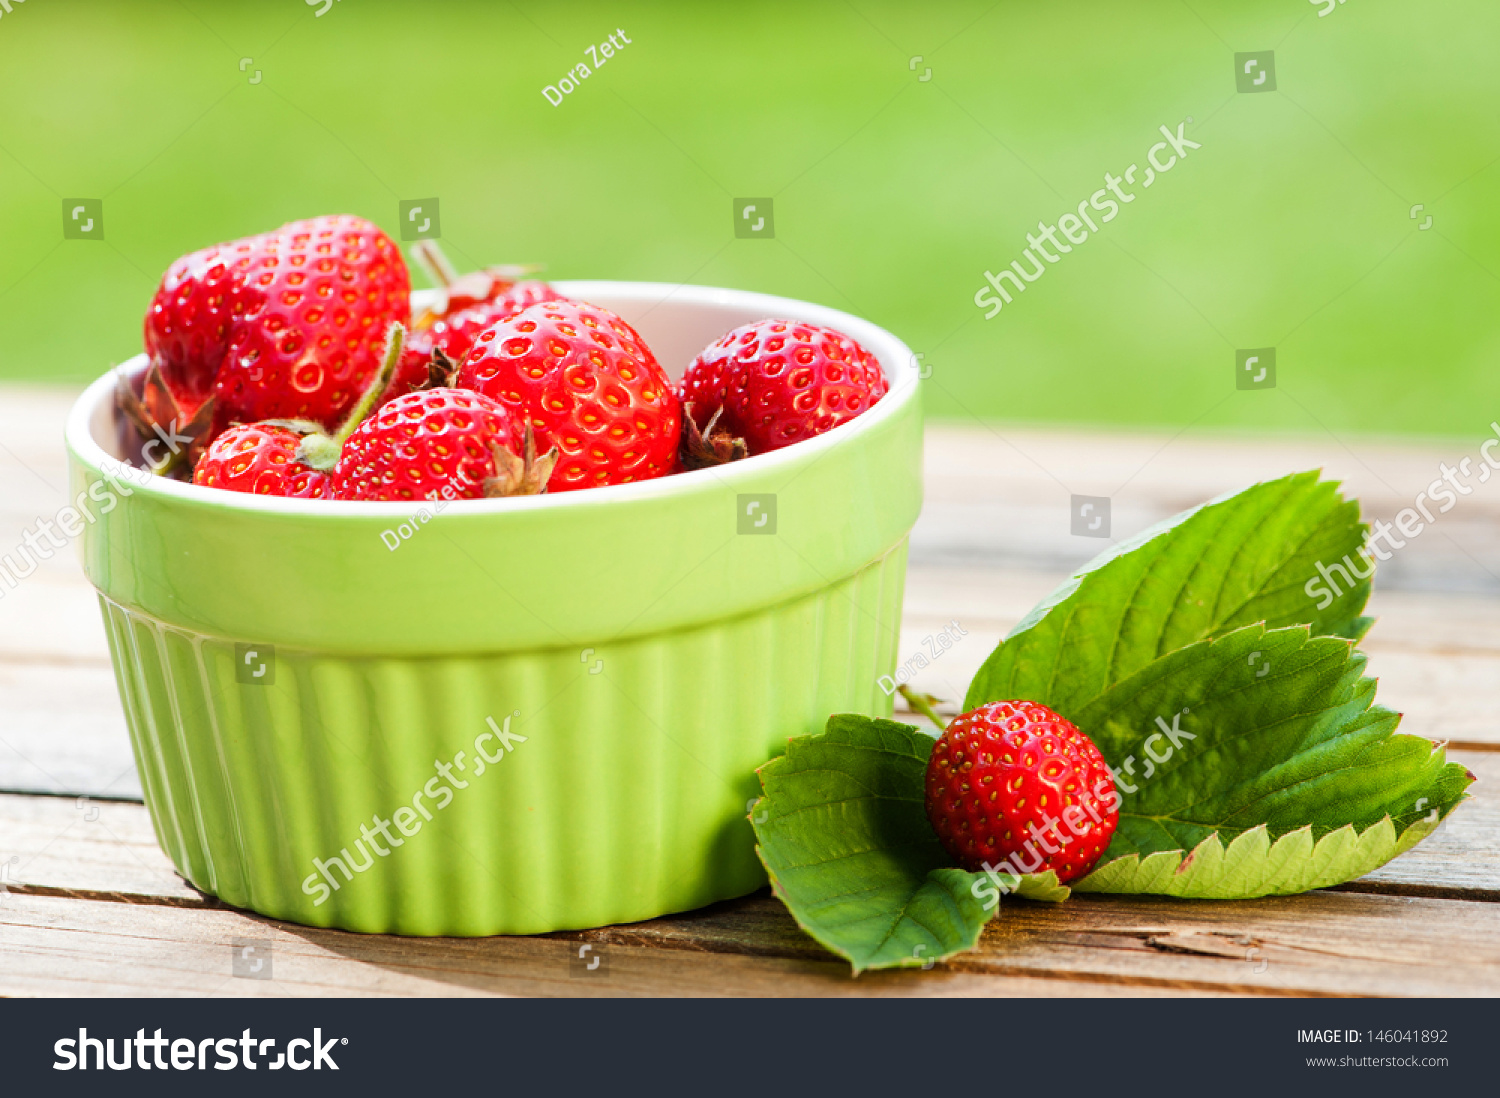 Colorful Fruit Bowl Fresh Strawberries In Colorful Fruit Bowl Stock Photo